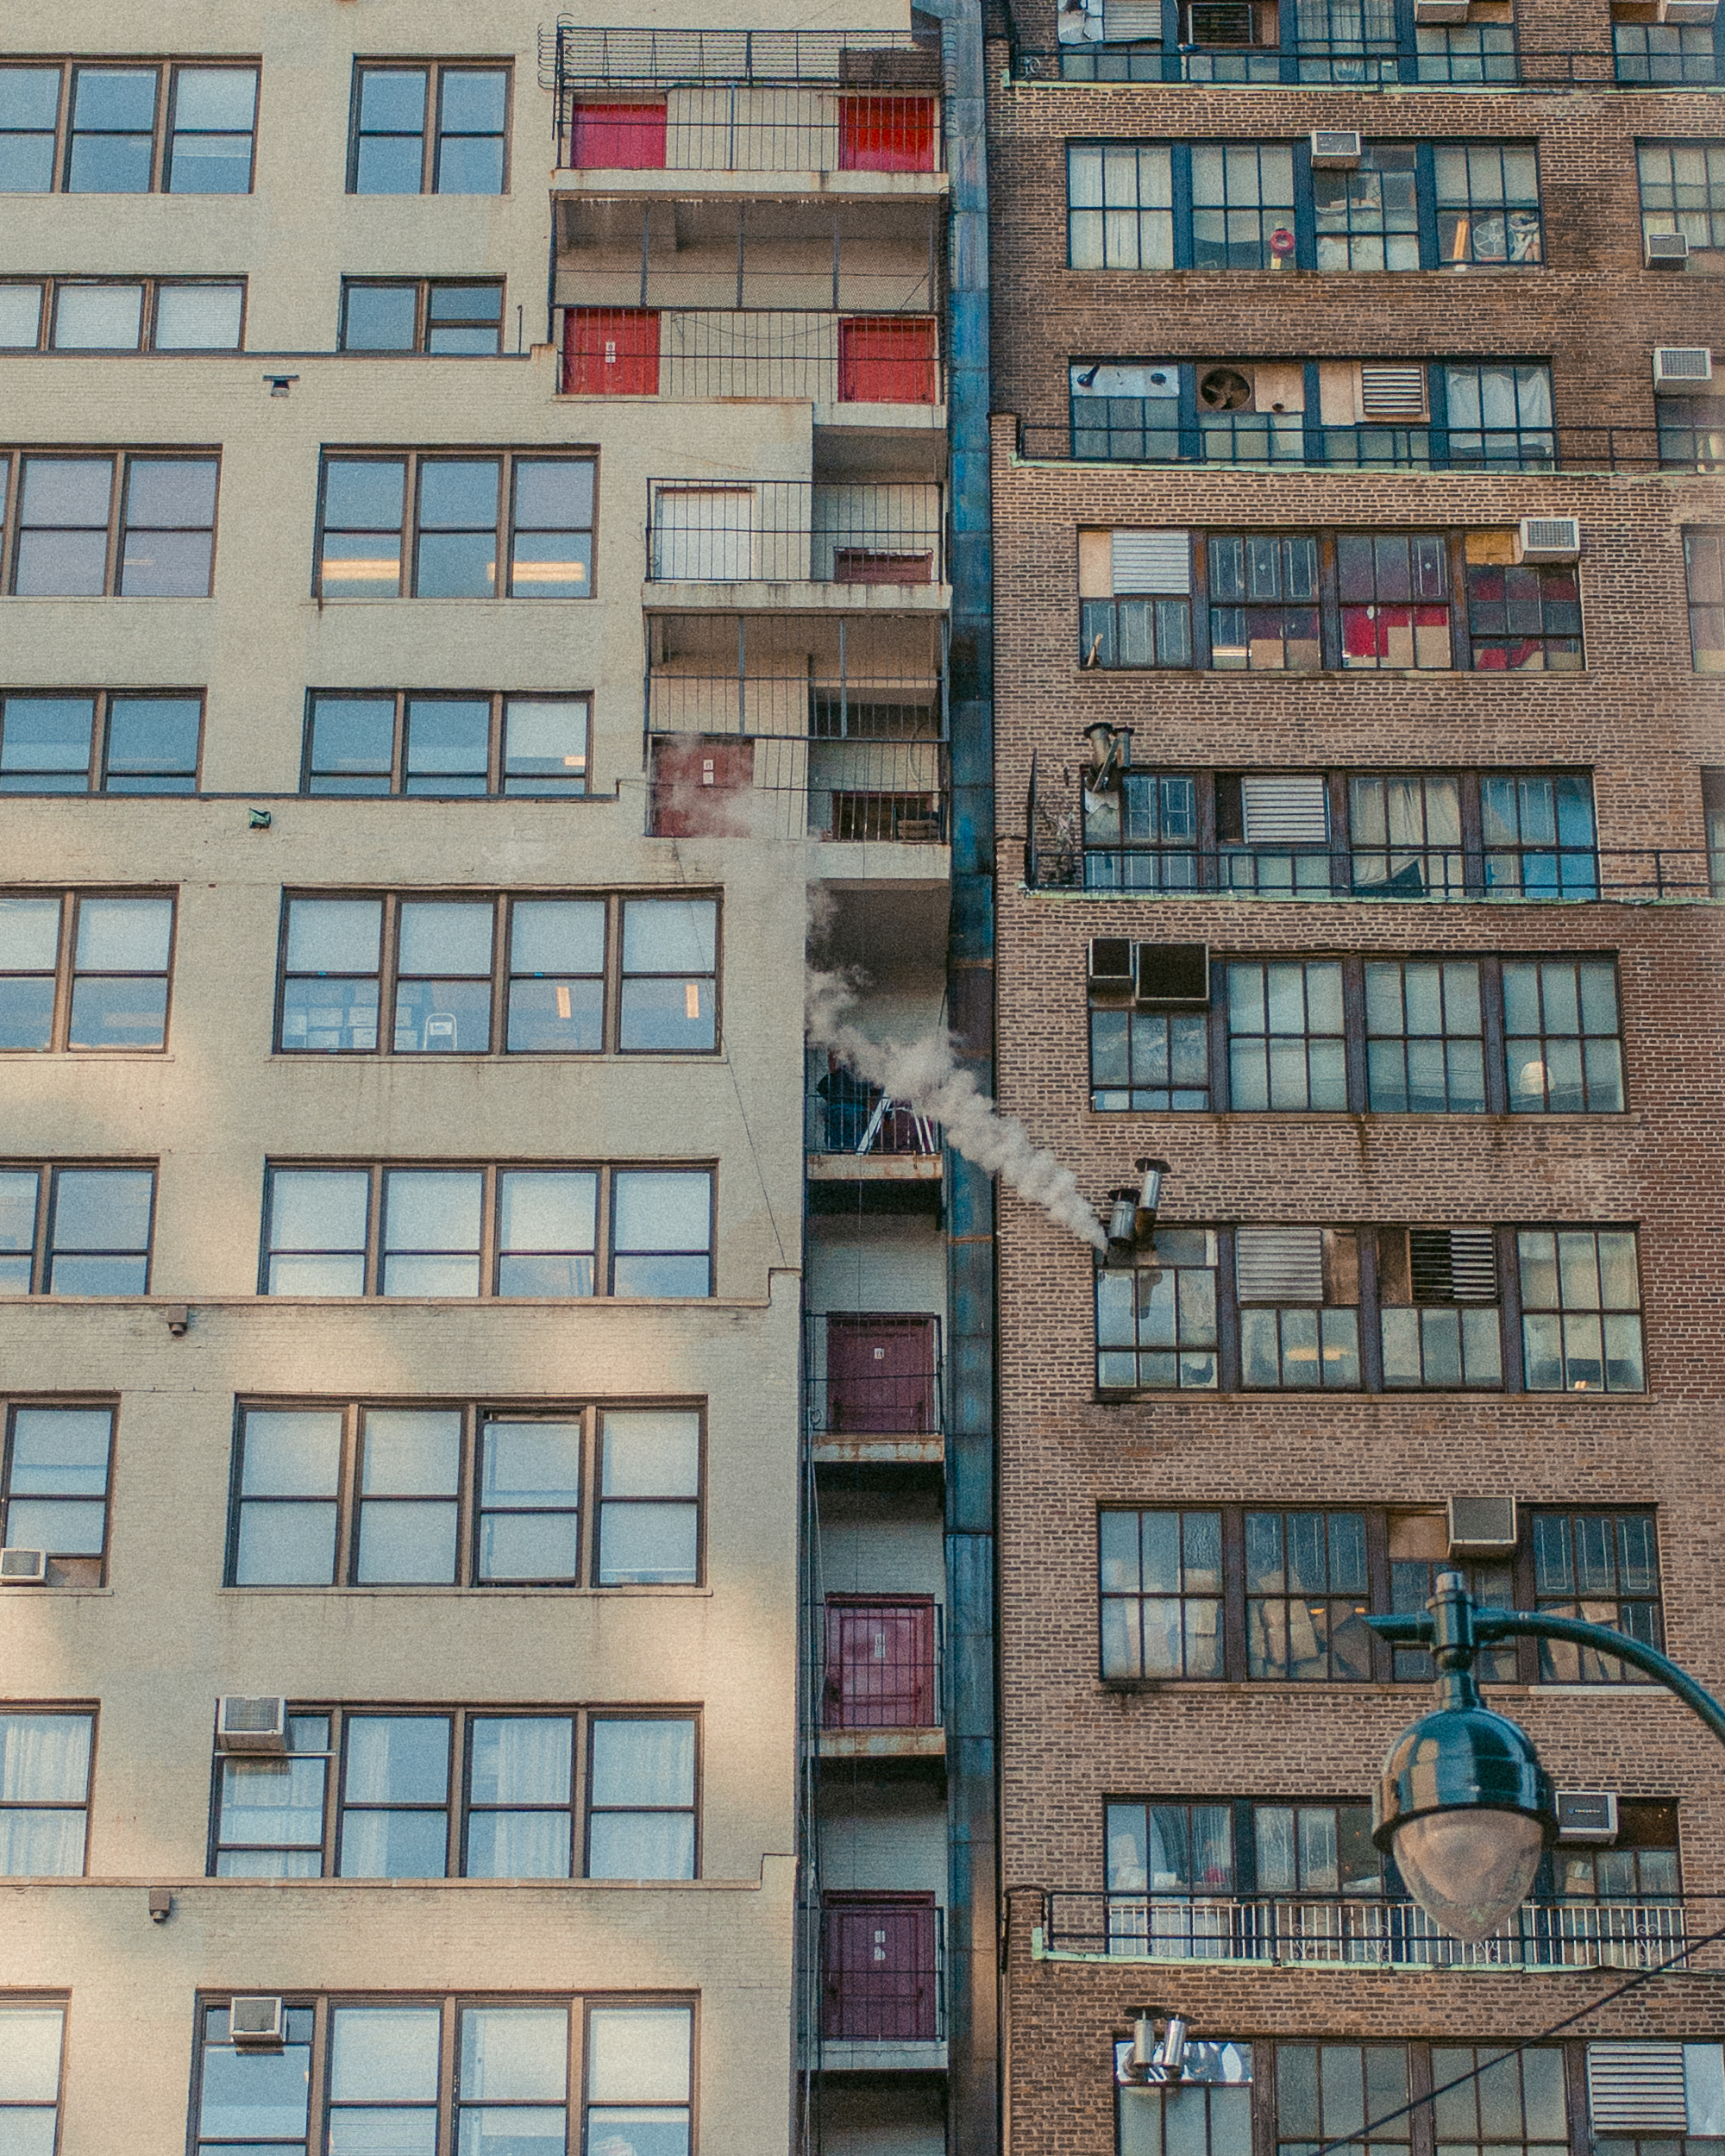 PLACES_NYC_071218_56.jpg